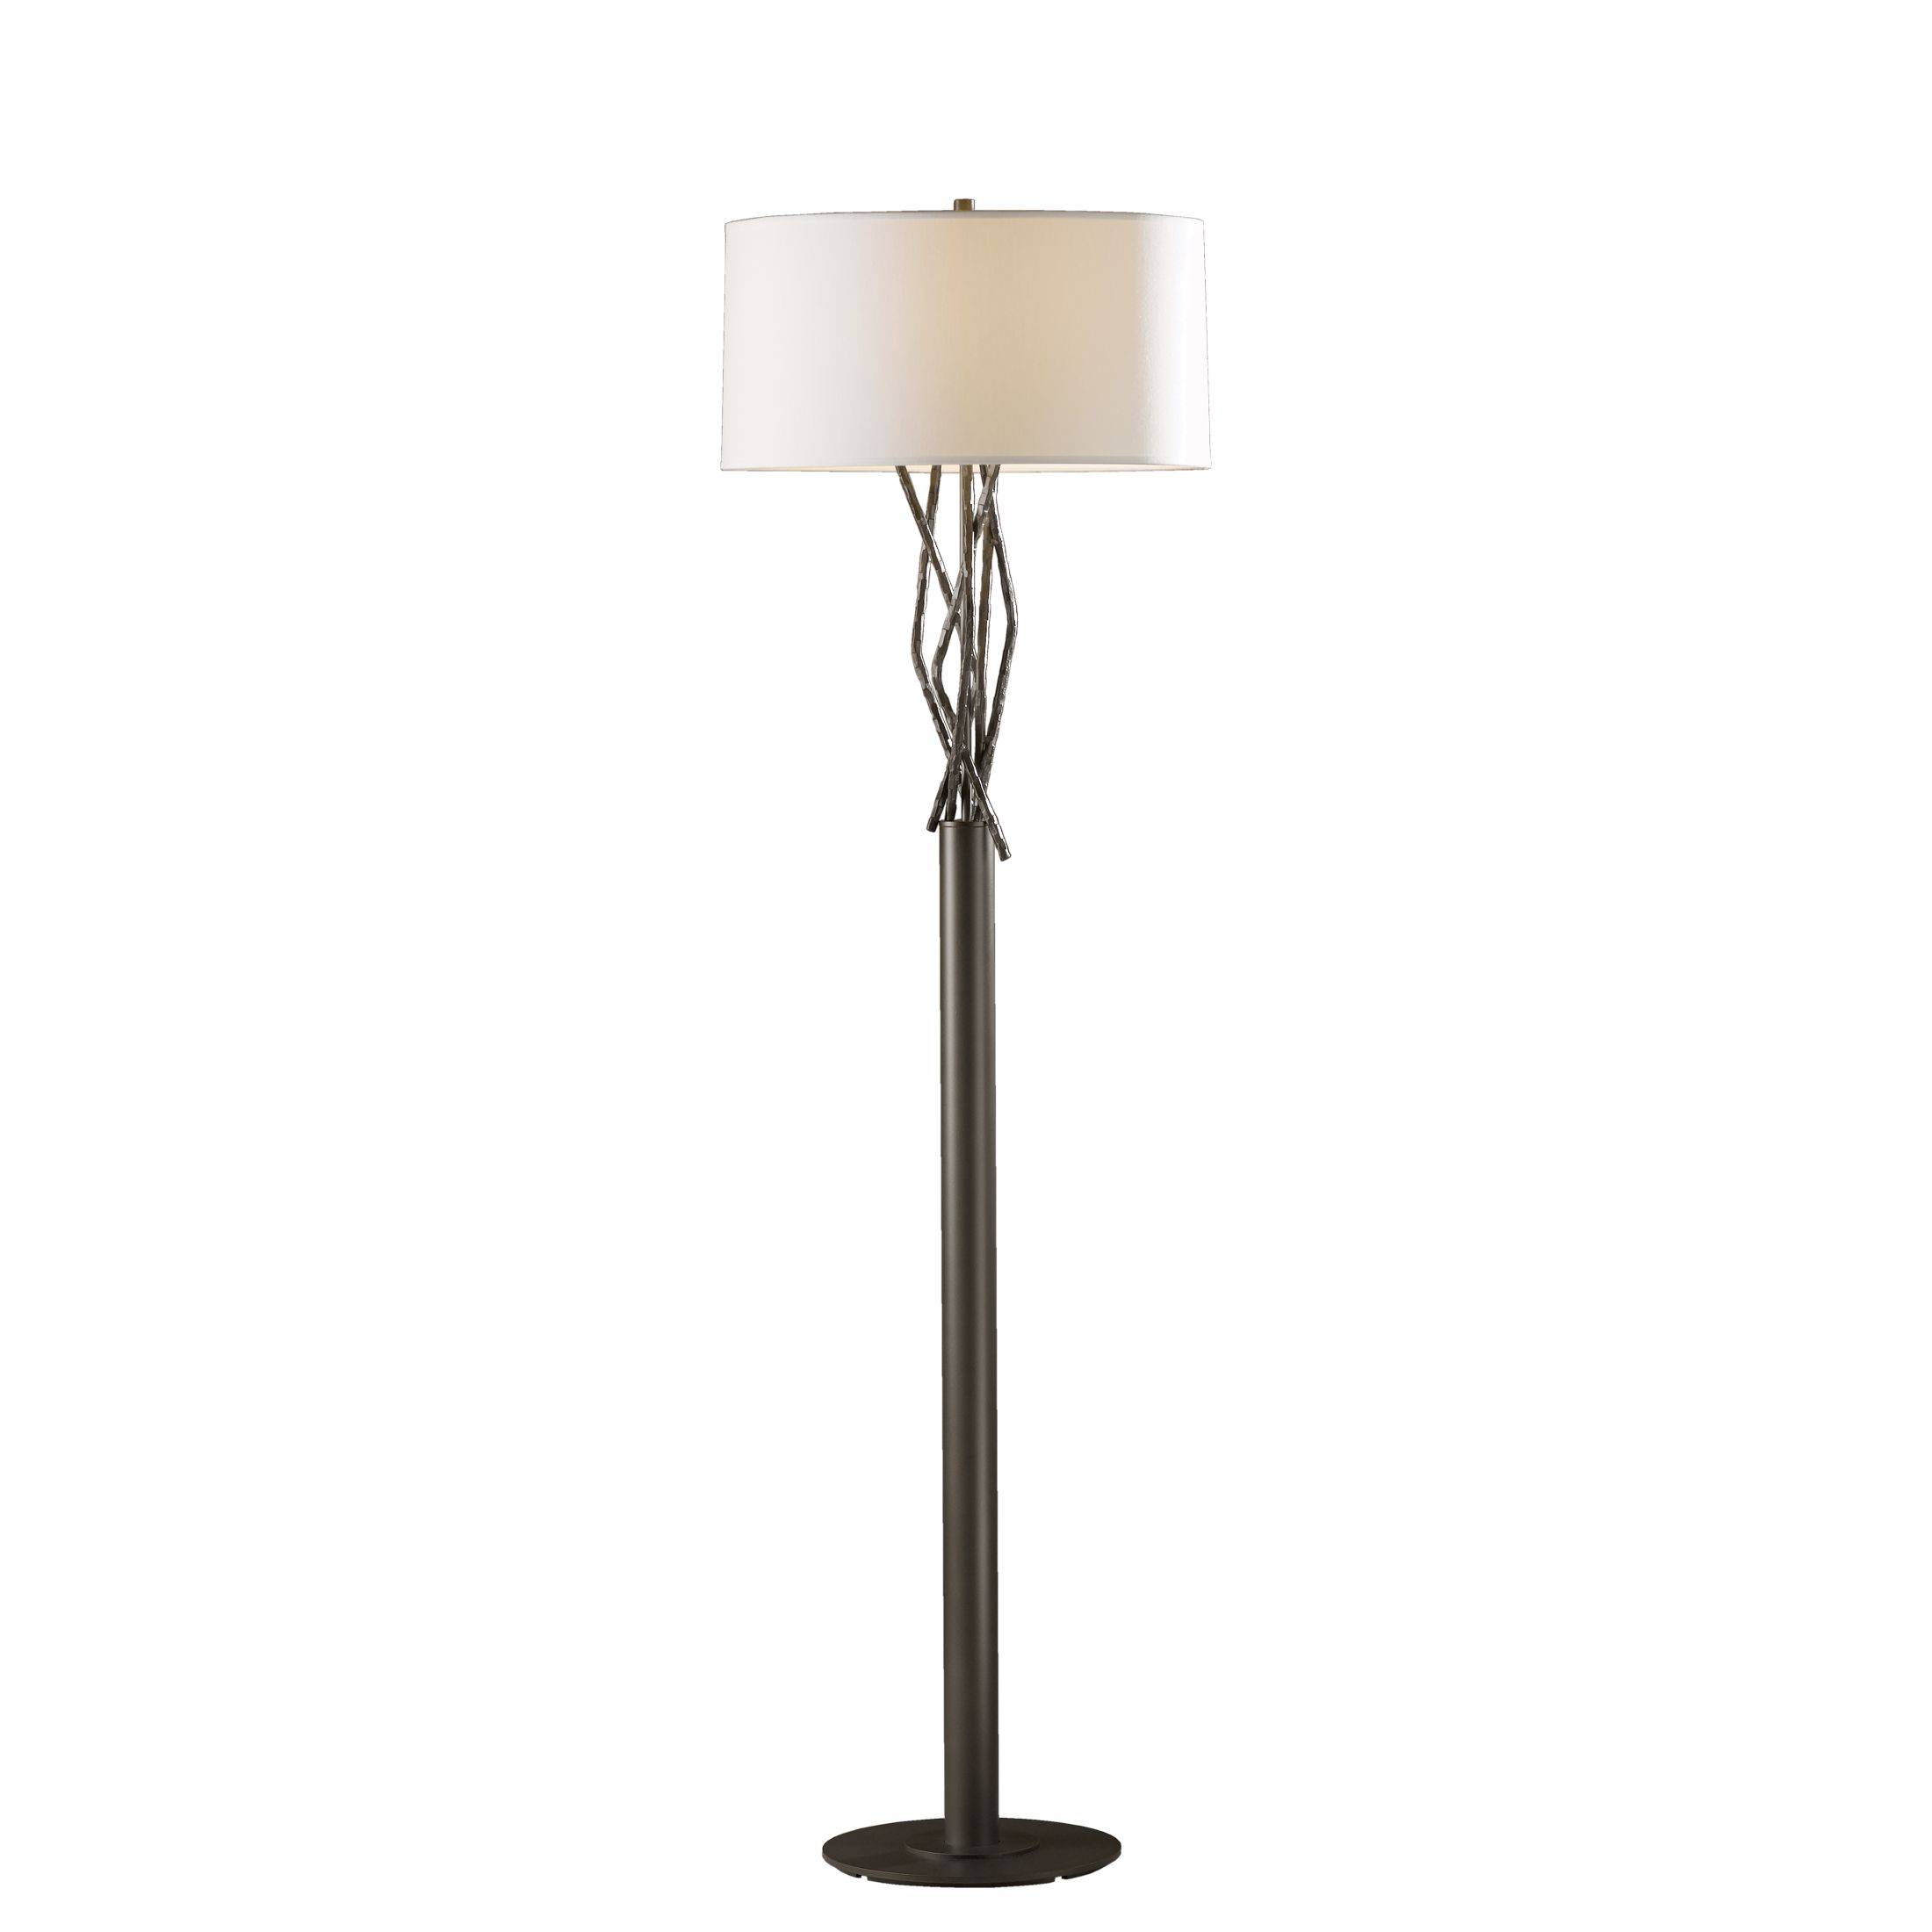 Thumbnail for Brindille Floor Lamp